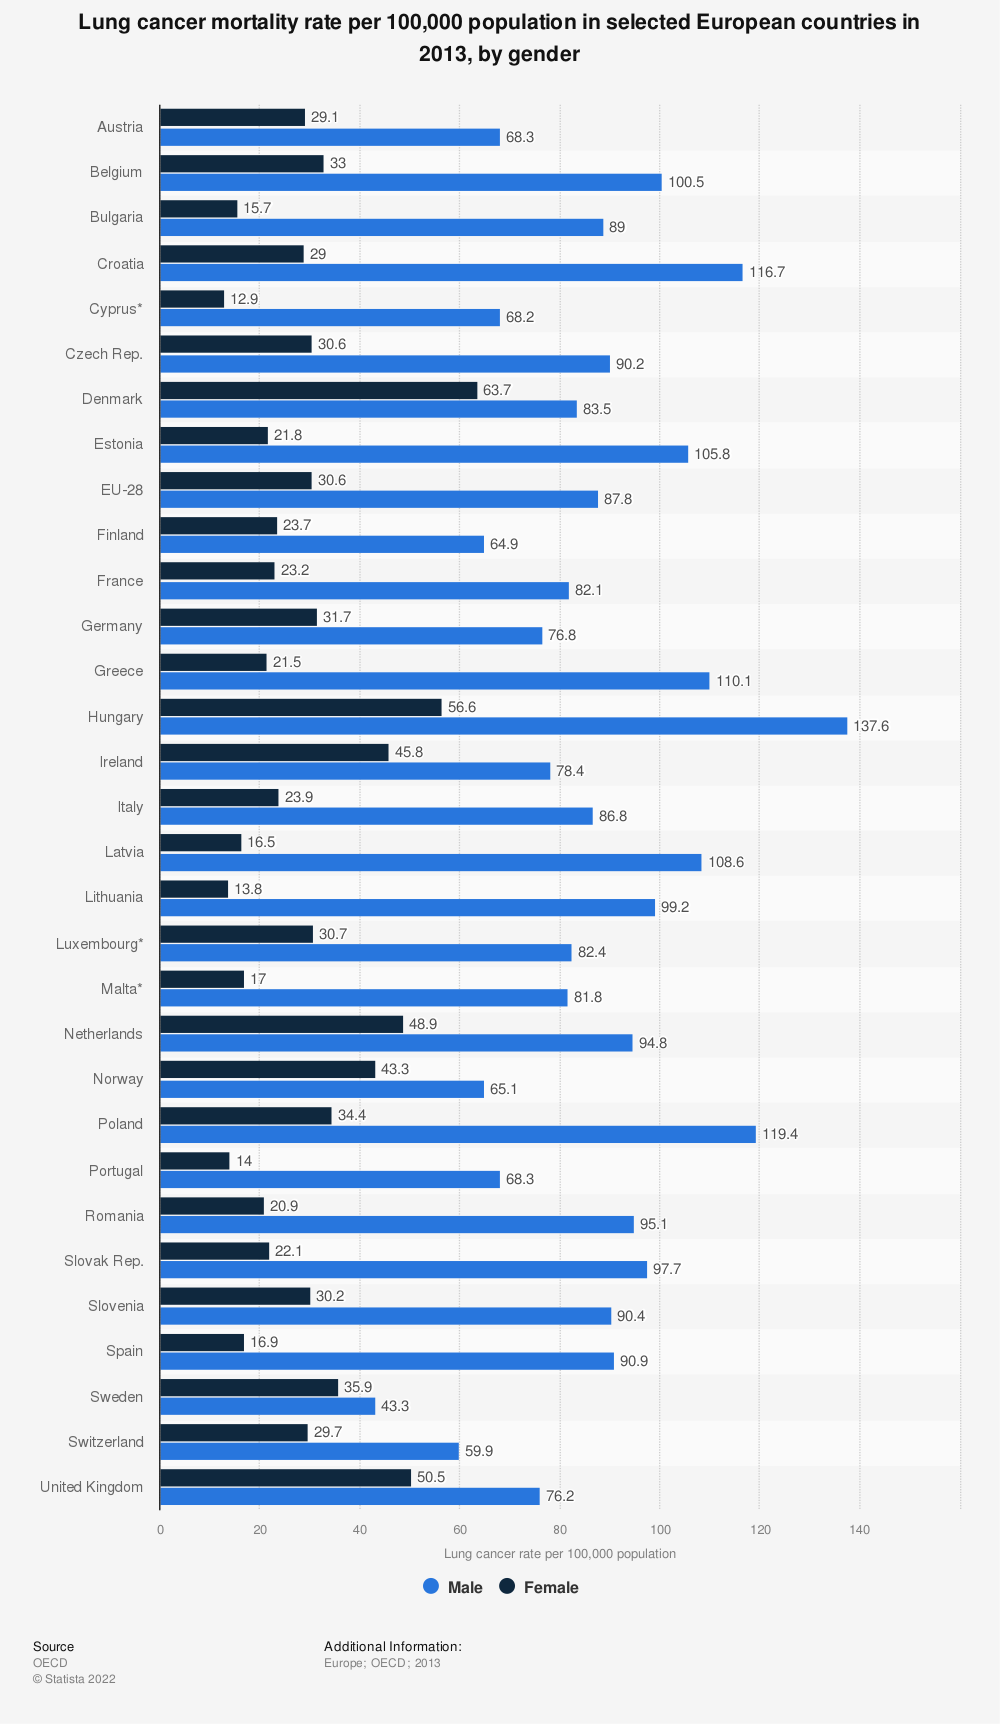 Statistic: Lung cancer mortality rate per 100,000 population in selected European countries in 2013, by gender | Statista